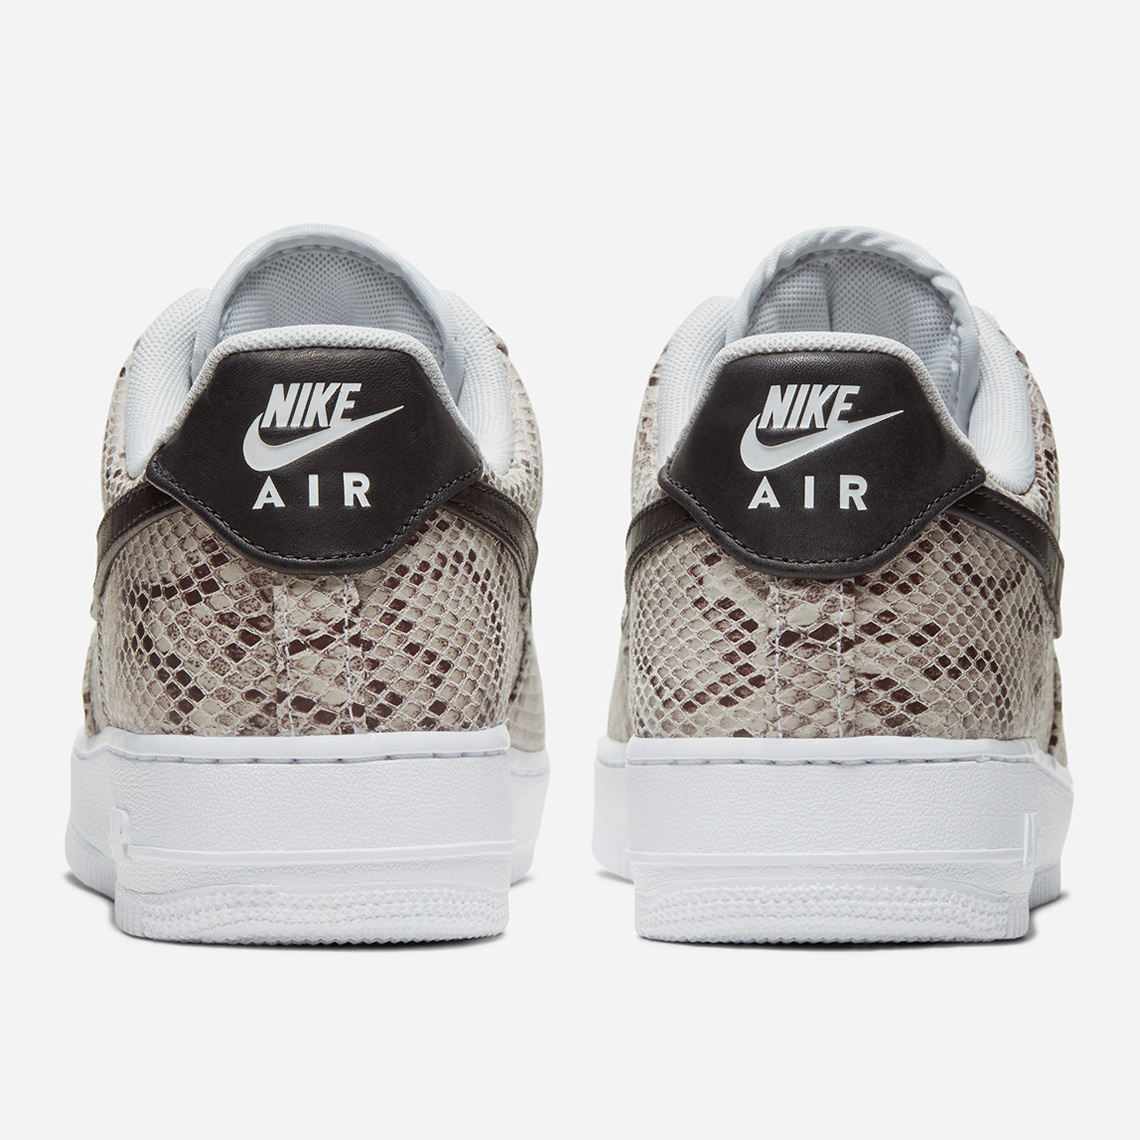 Nike Air Force 1 Low Snakeskin Holiday 2019 | SneakerNews.com